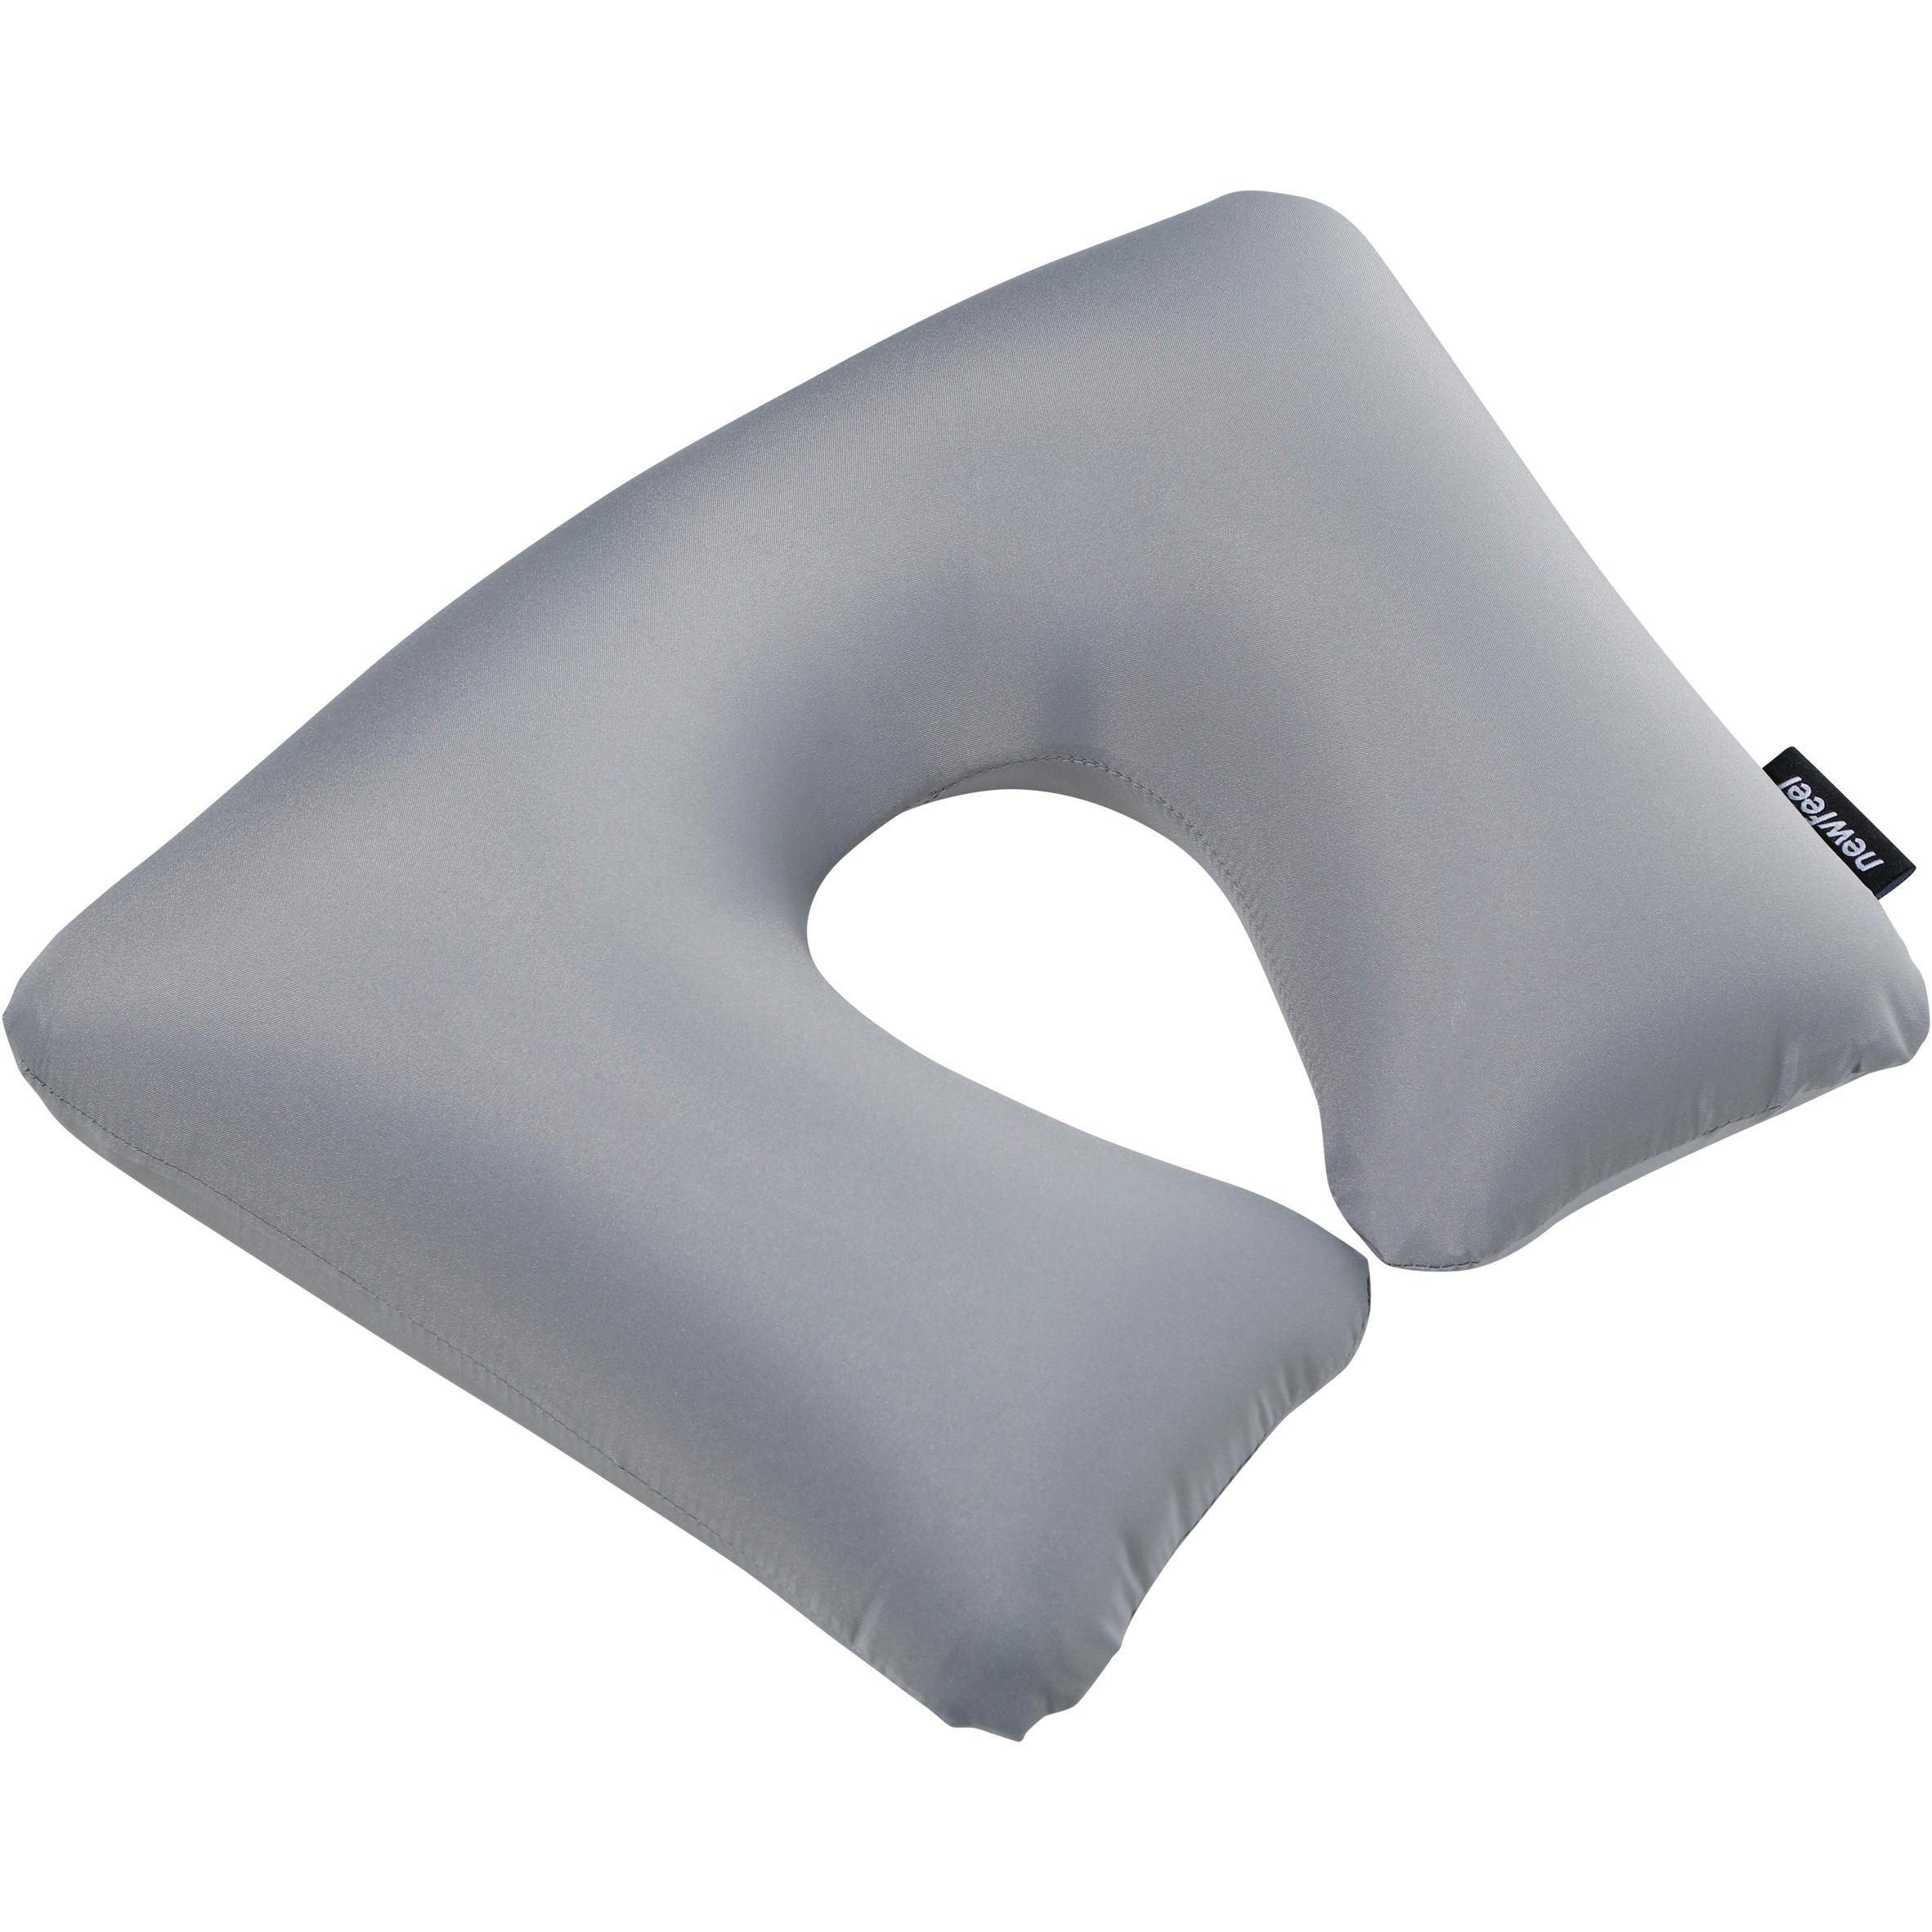 Inflatable Travel Cushion - Grey